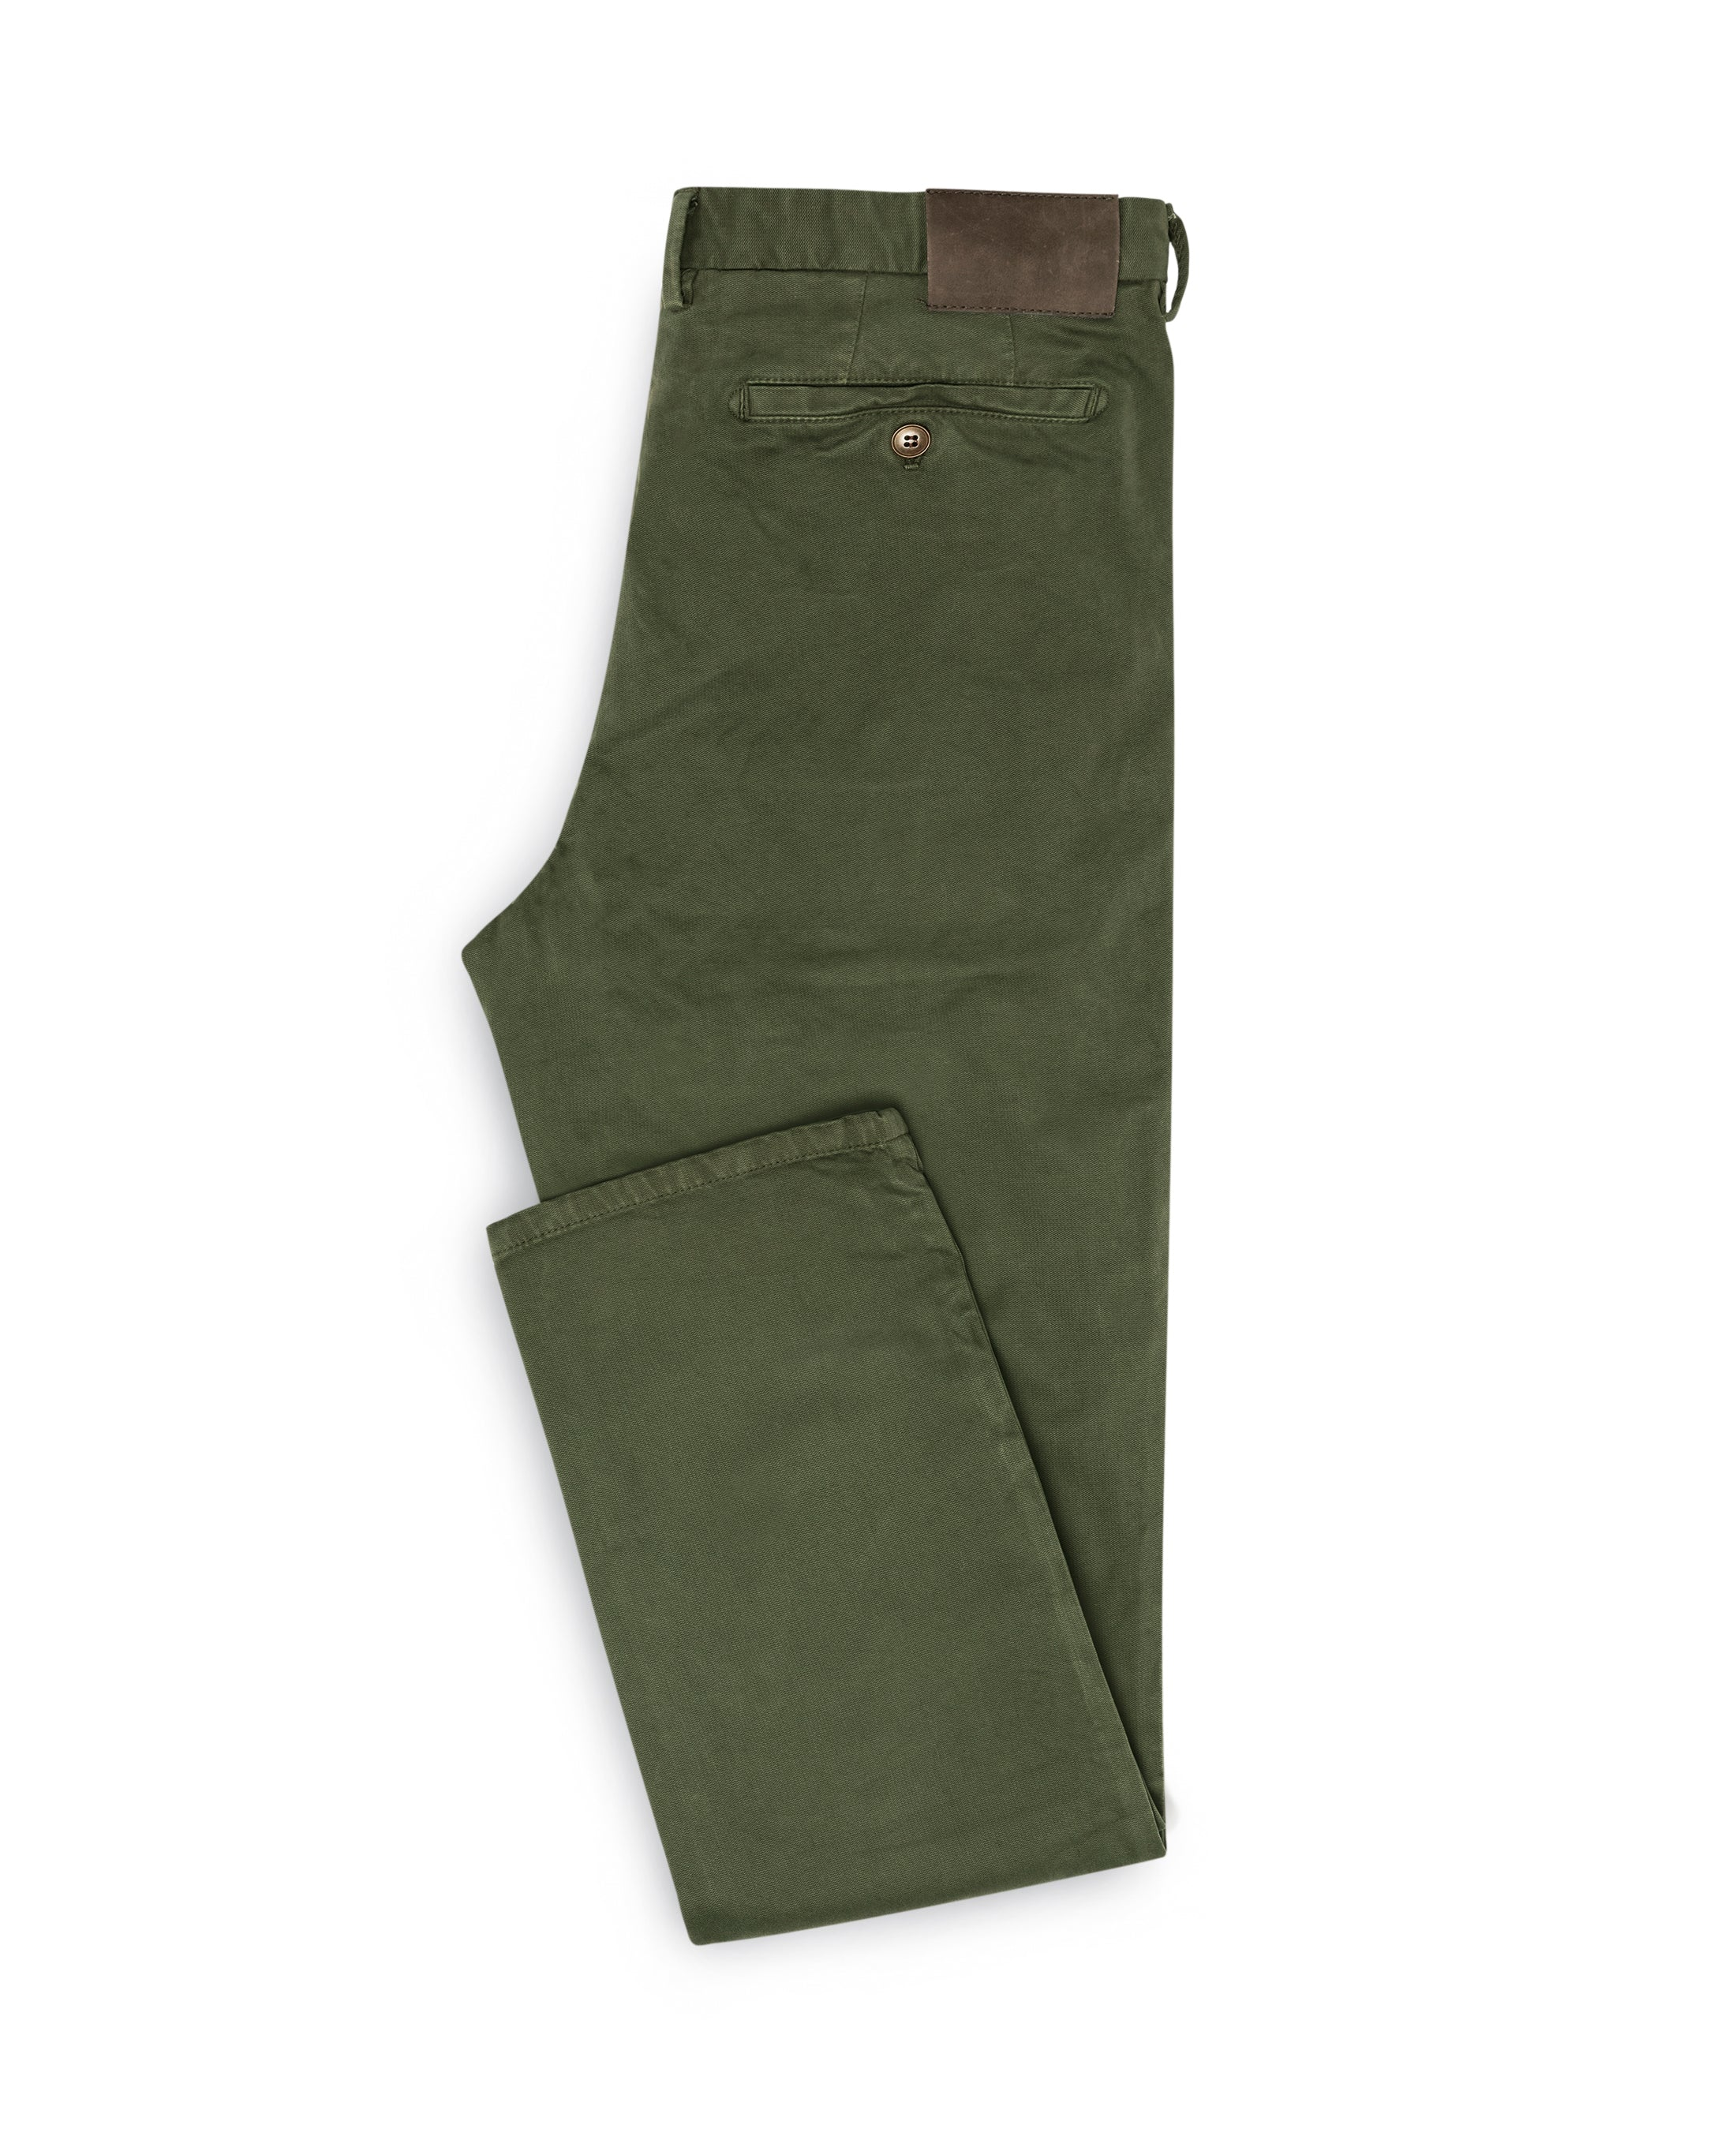 COG004 Olive Stretch chino Made In Italy. Medlemspris 1.100,-